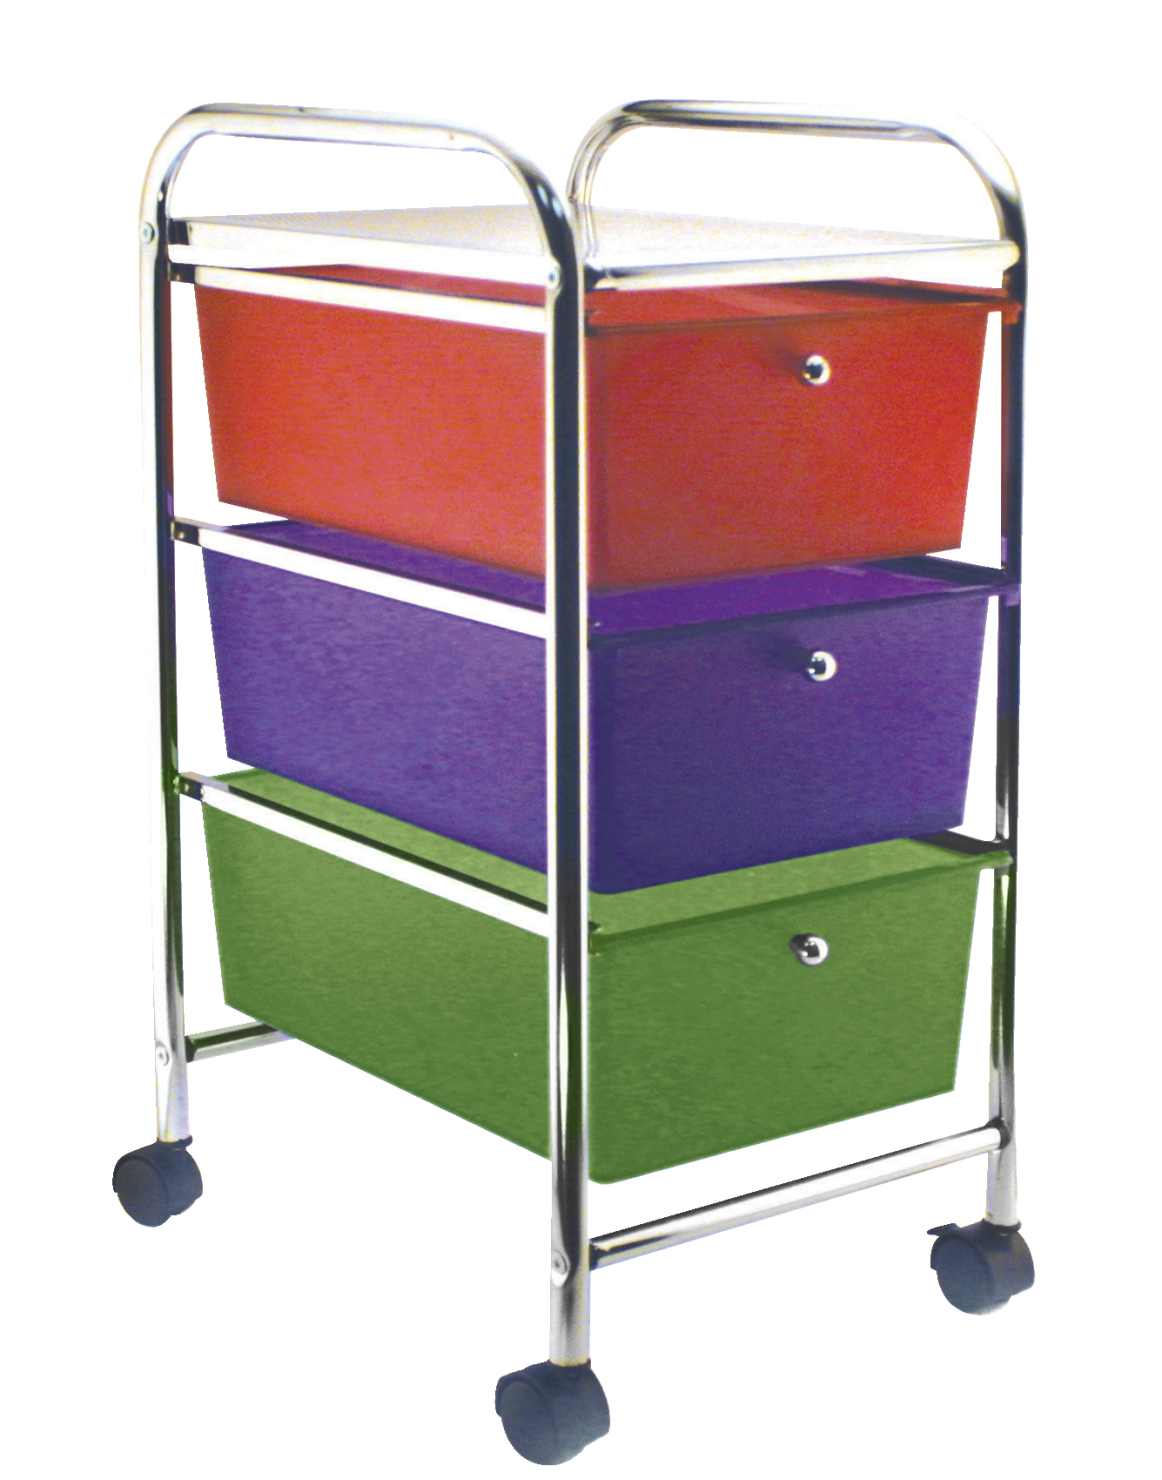 by cart mesh depot recollectionsa drawer carts storage paper incredible recollections drawers walmart rolling office with